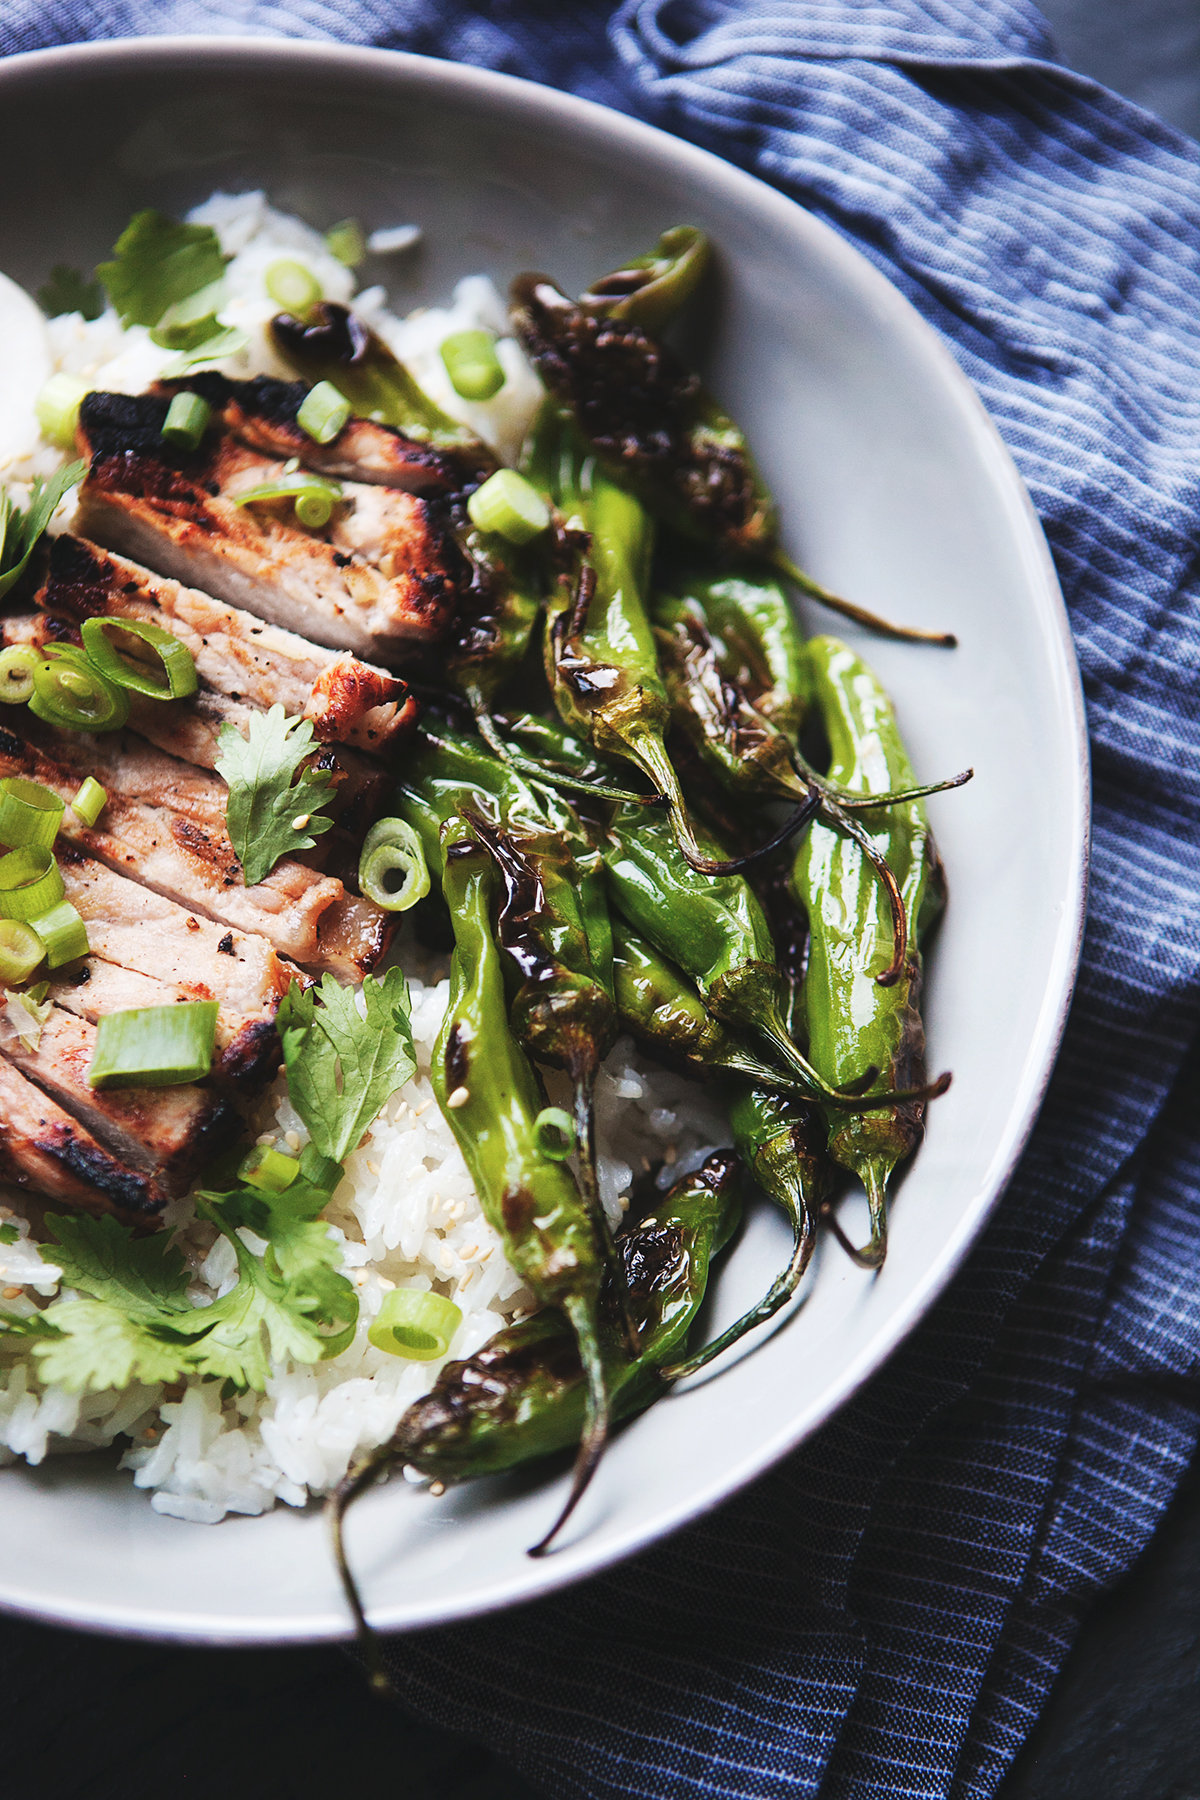 Thai Ginger Grilled Pork Rice Bowl with Charred Shishito